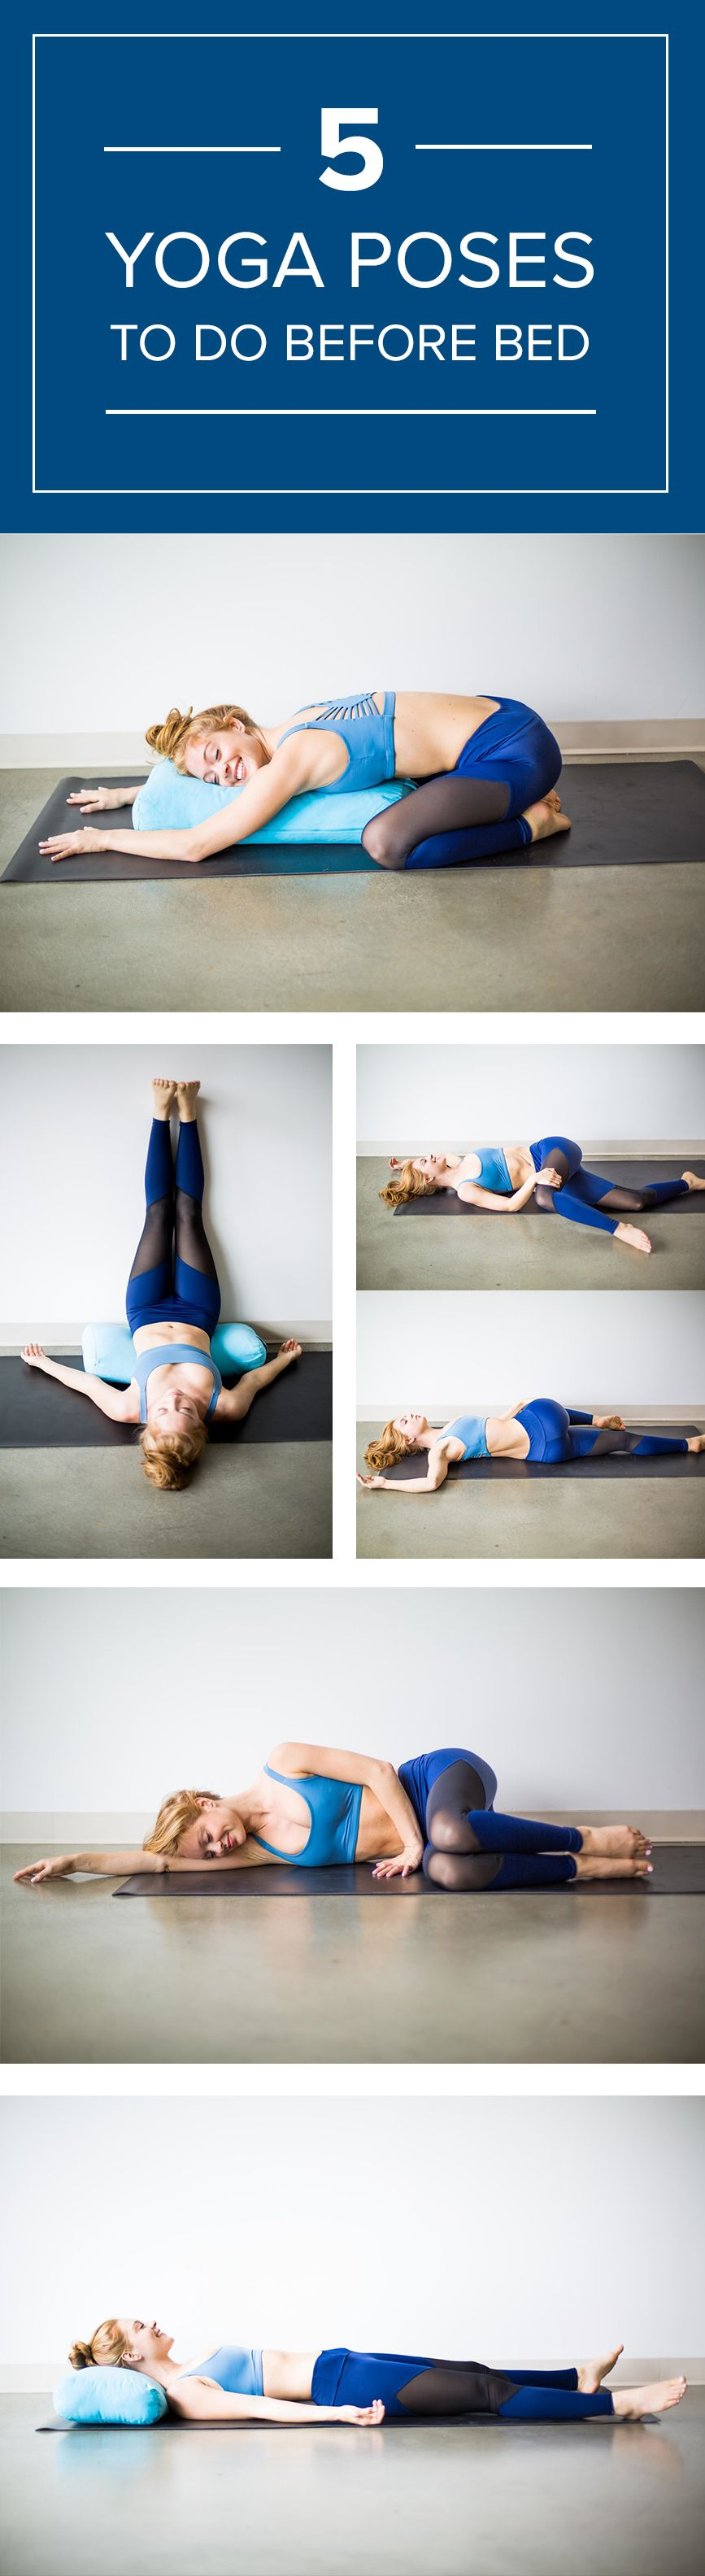 Bedtime yoga: Poses to help you unwind